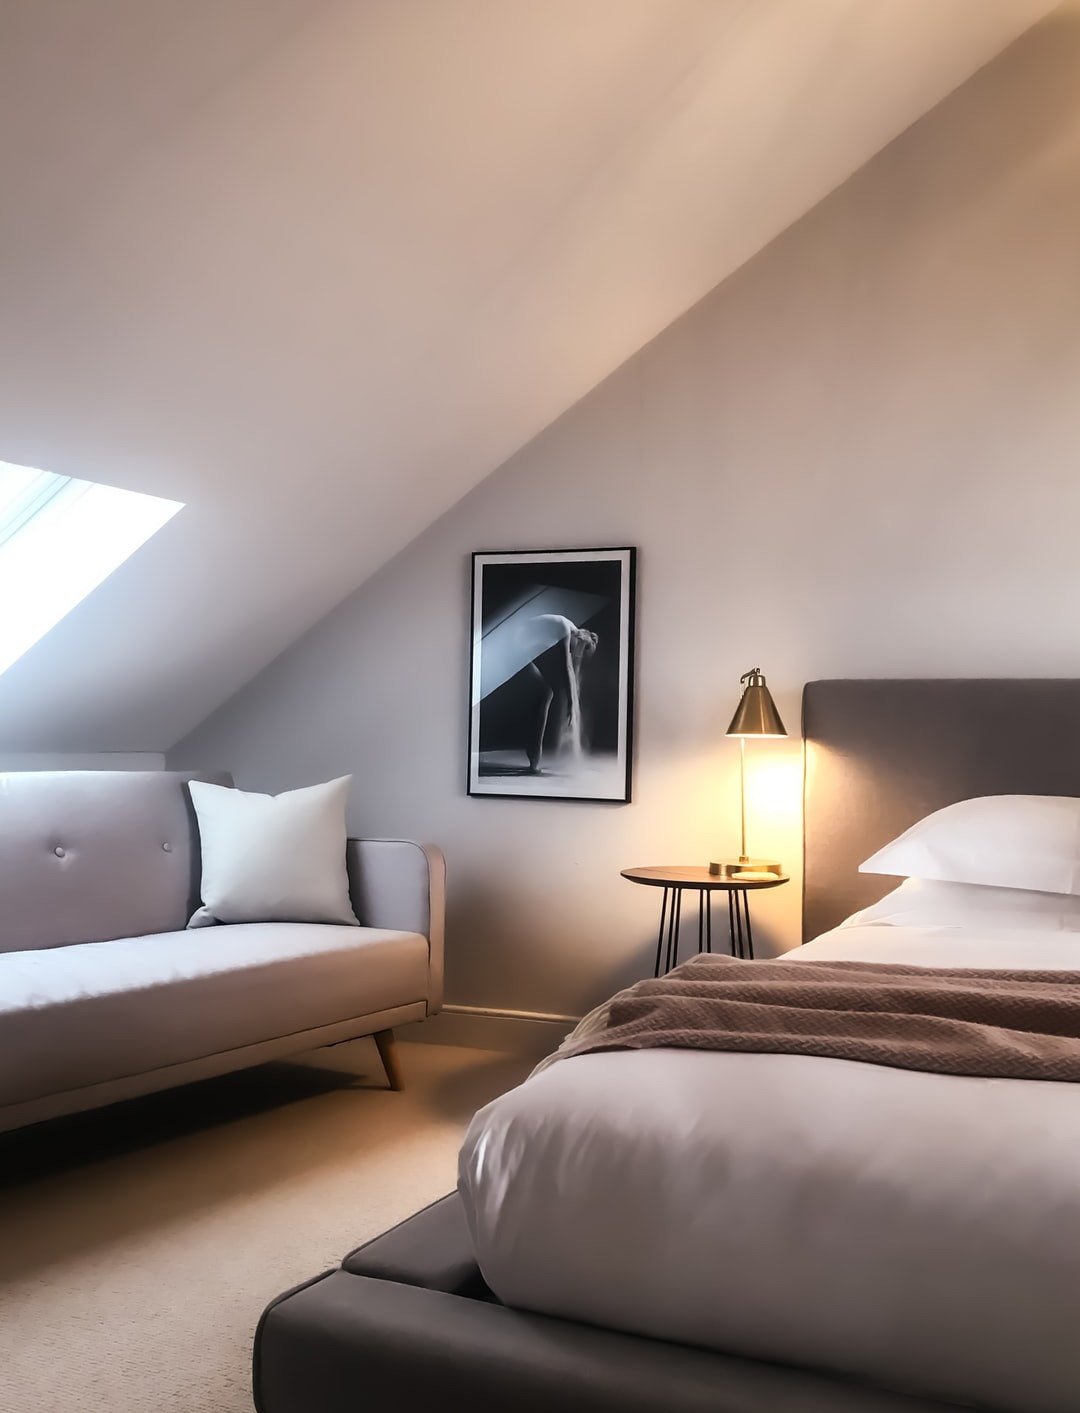 Cozy bedroom in grey: Light, elegant and timeless